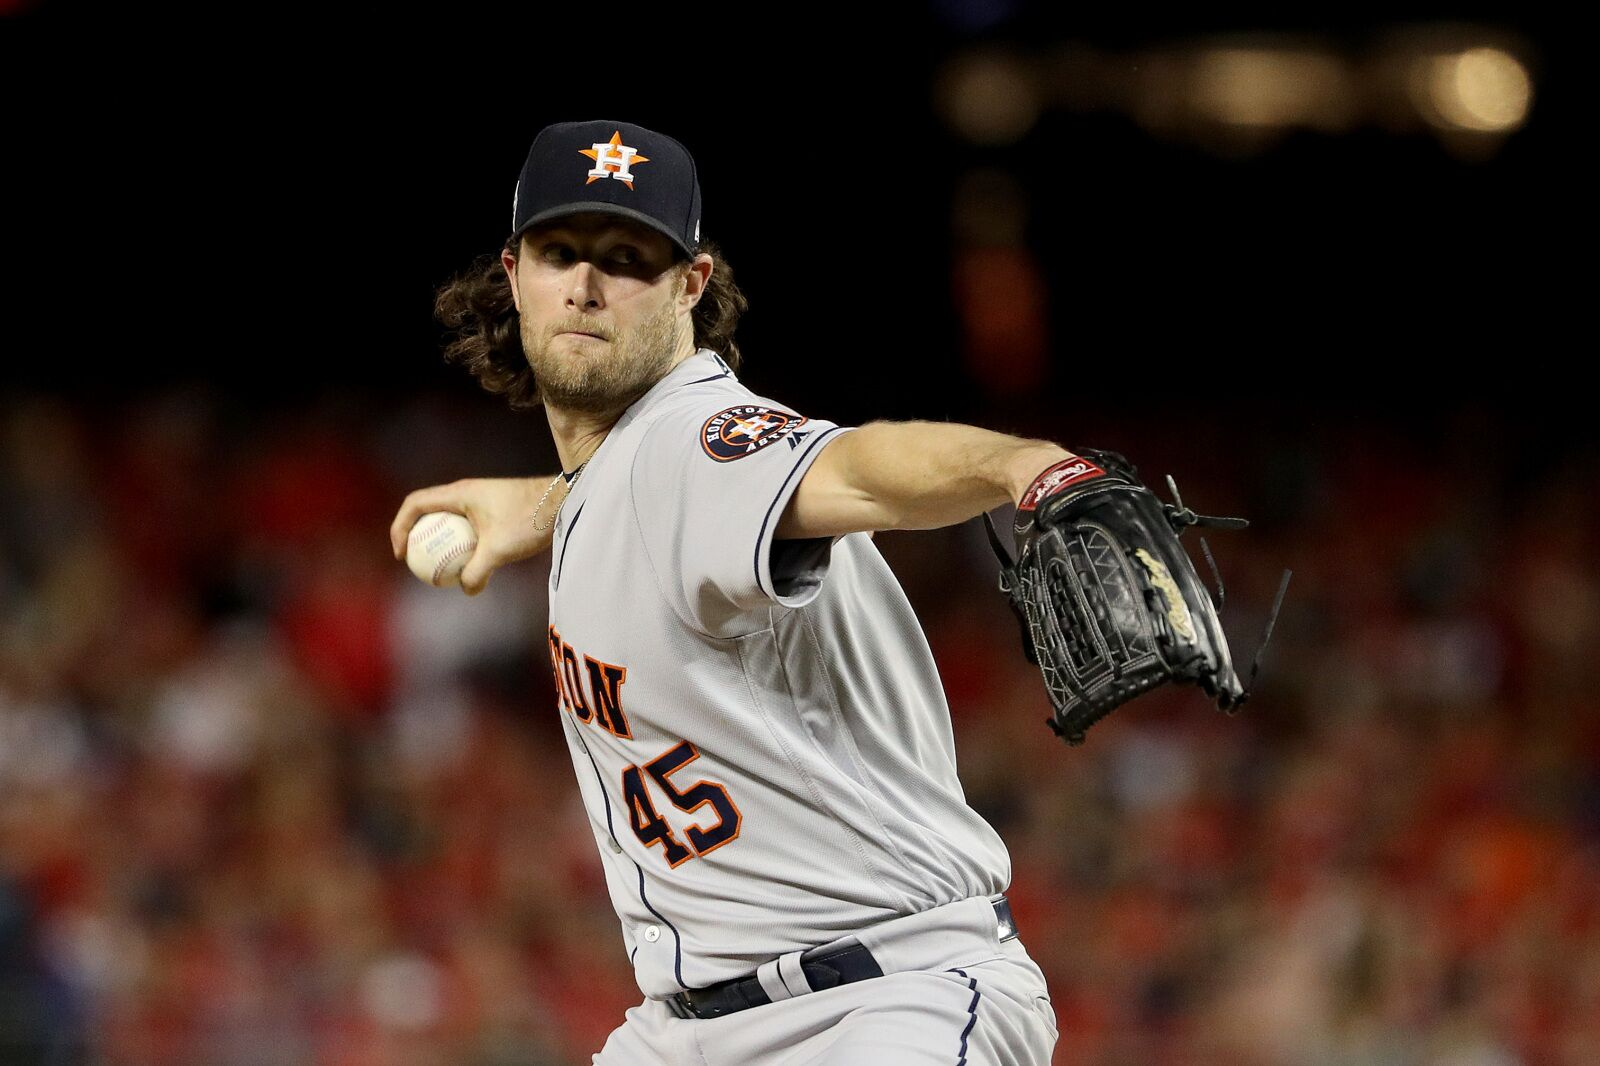 Yankees: An ideal contract for free agent starter Gerrit Cole